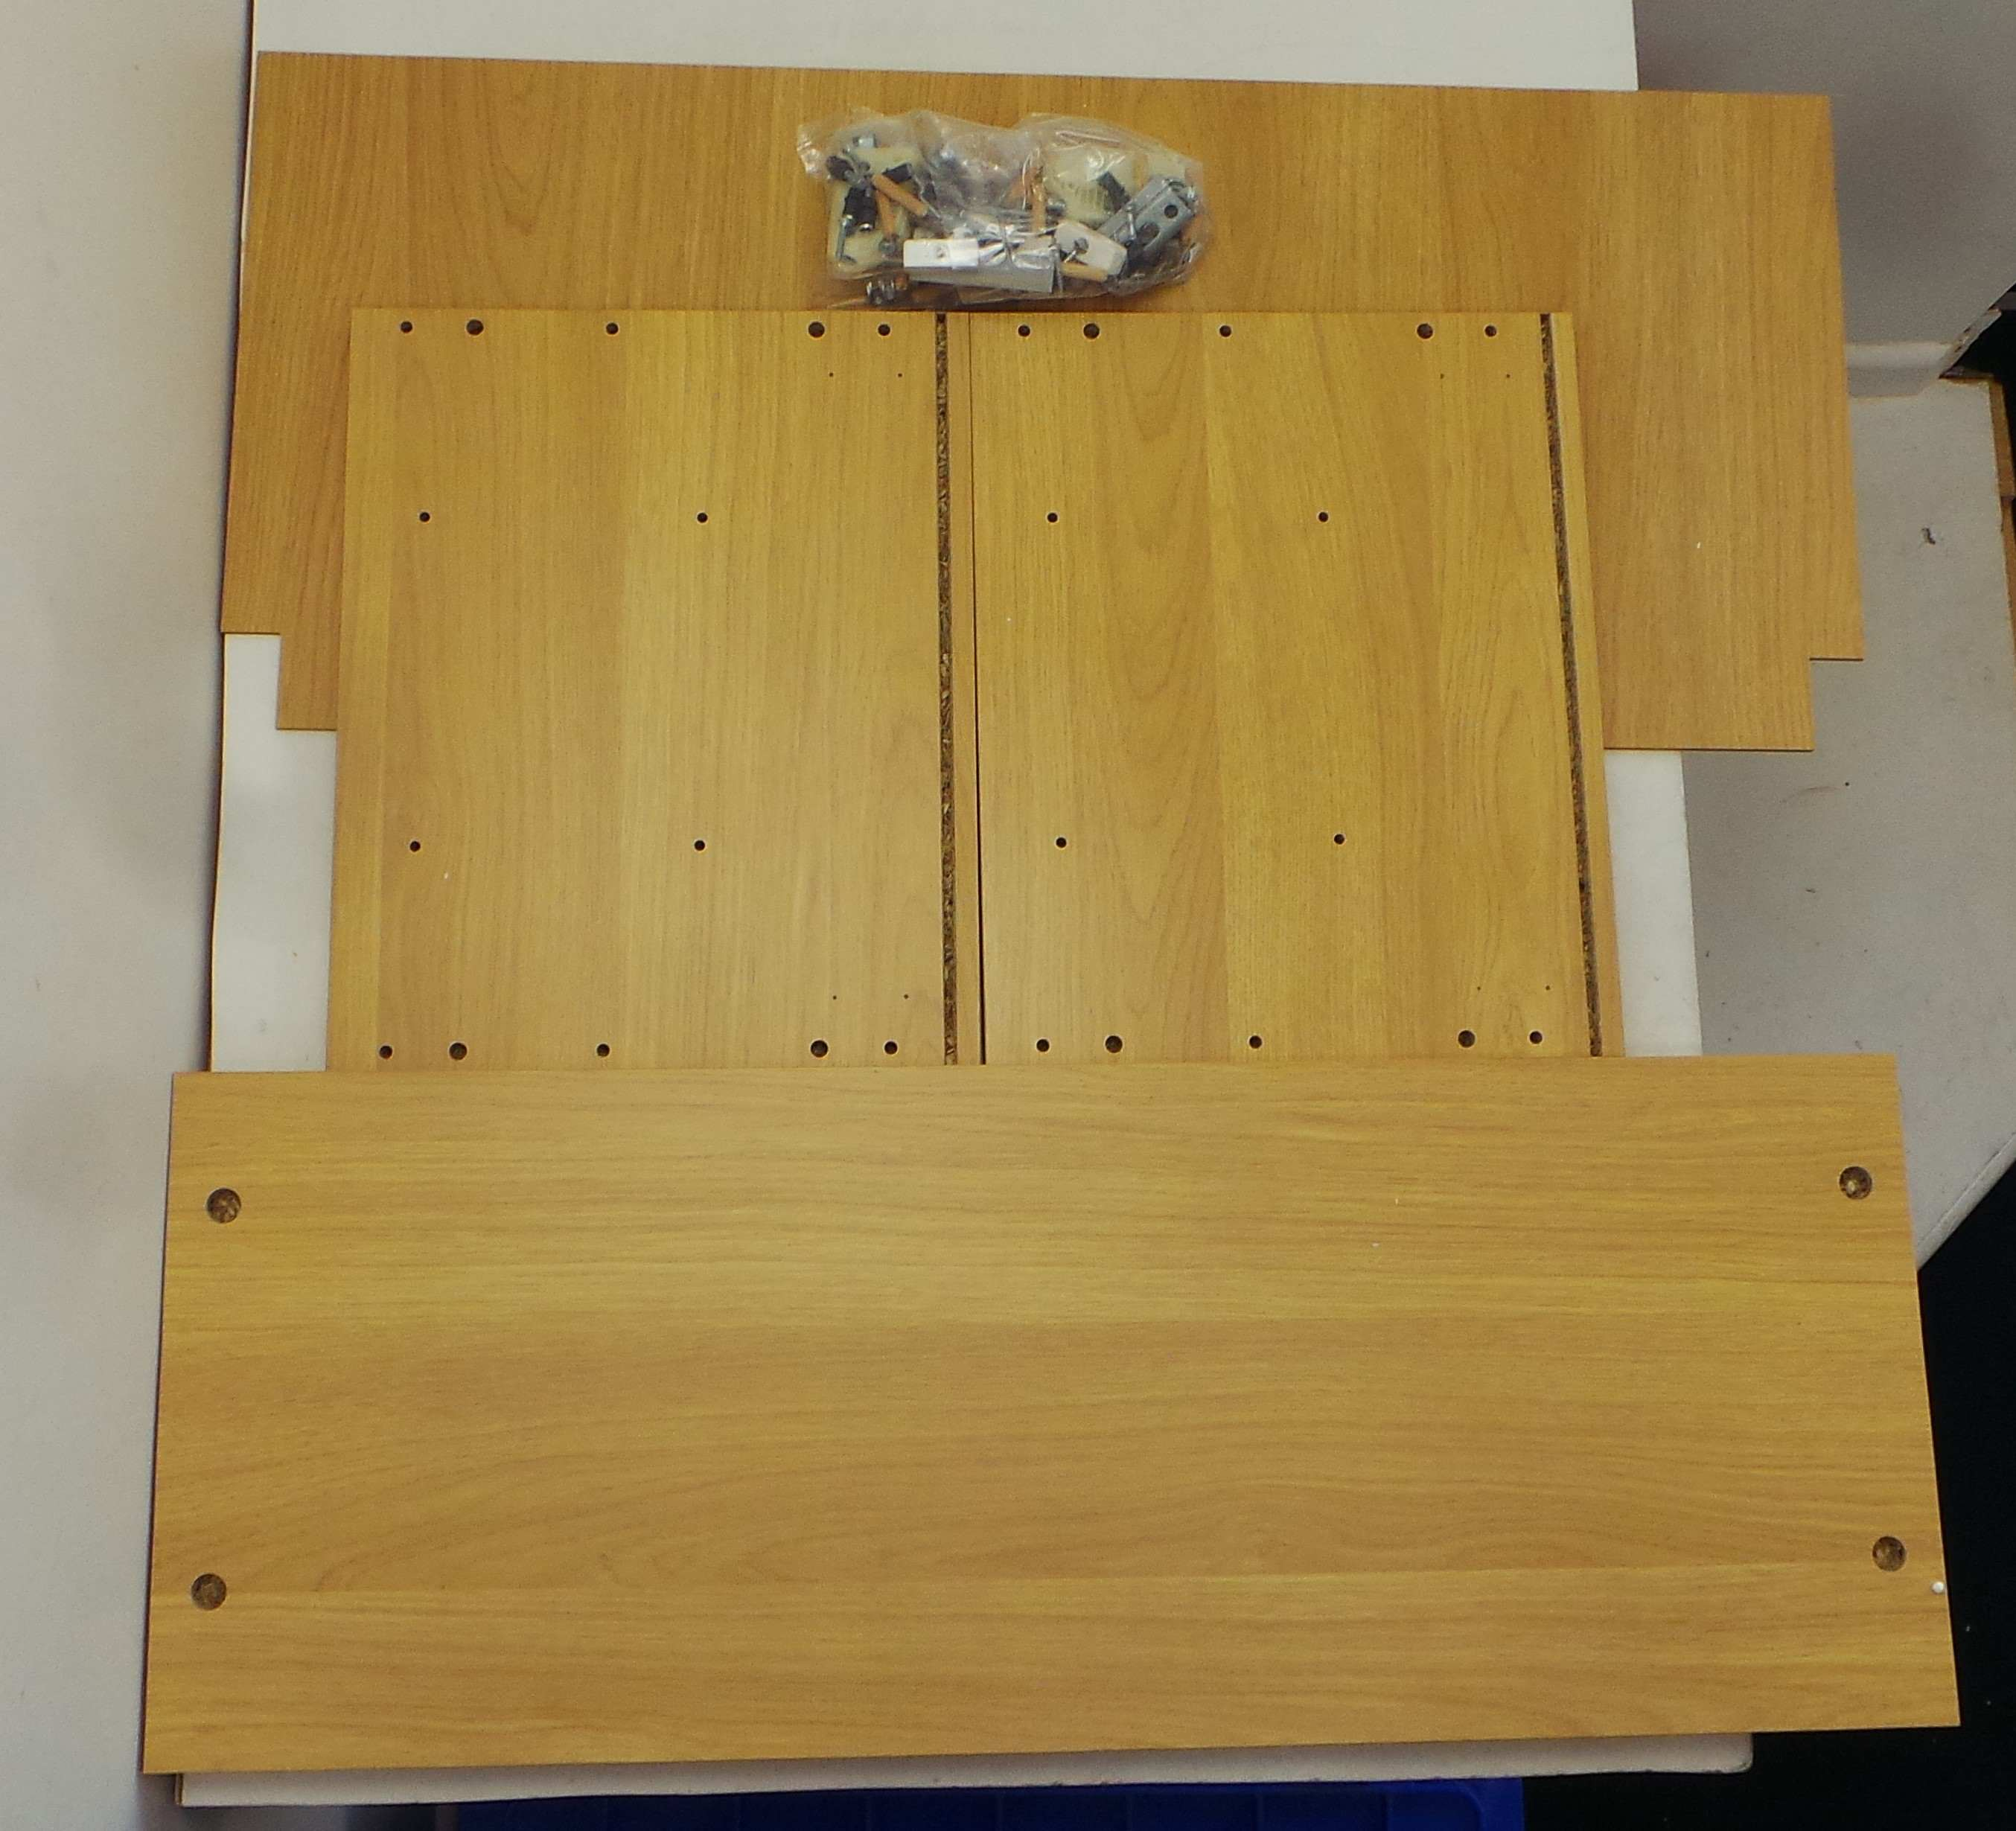 Mfi Kitchen Cabinets: One Off Joblot Of 58 800mm MFI Half Height Wall Cabinets